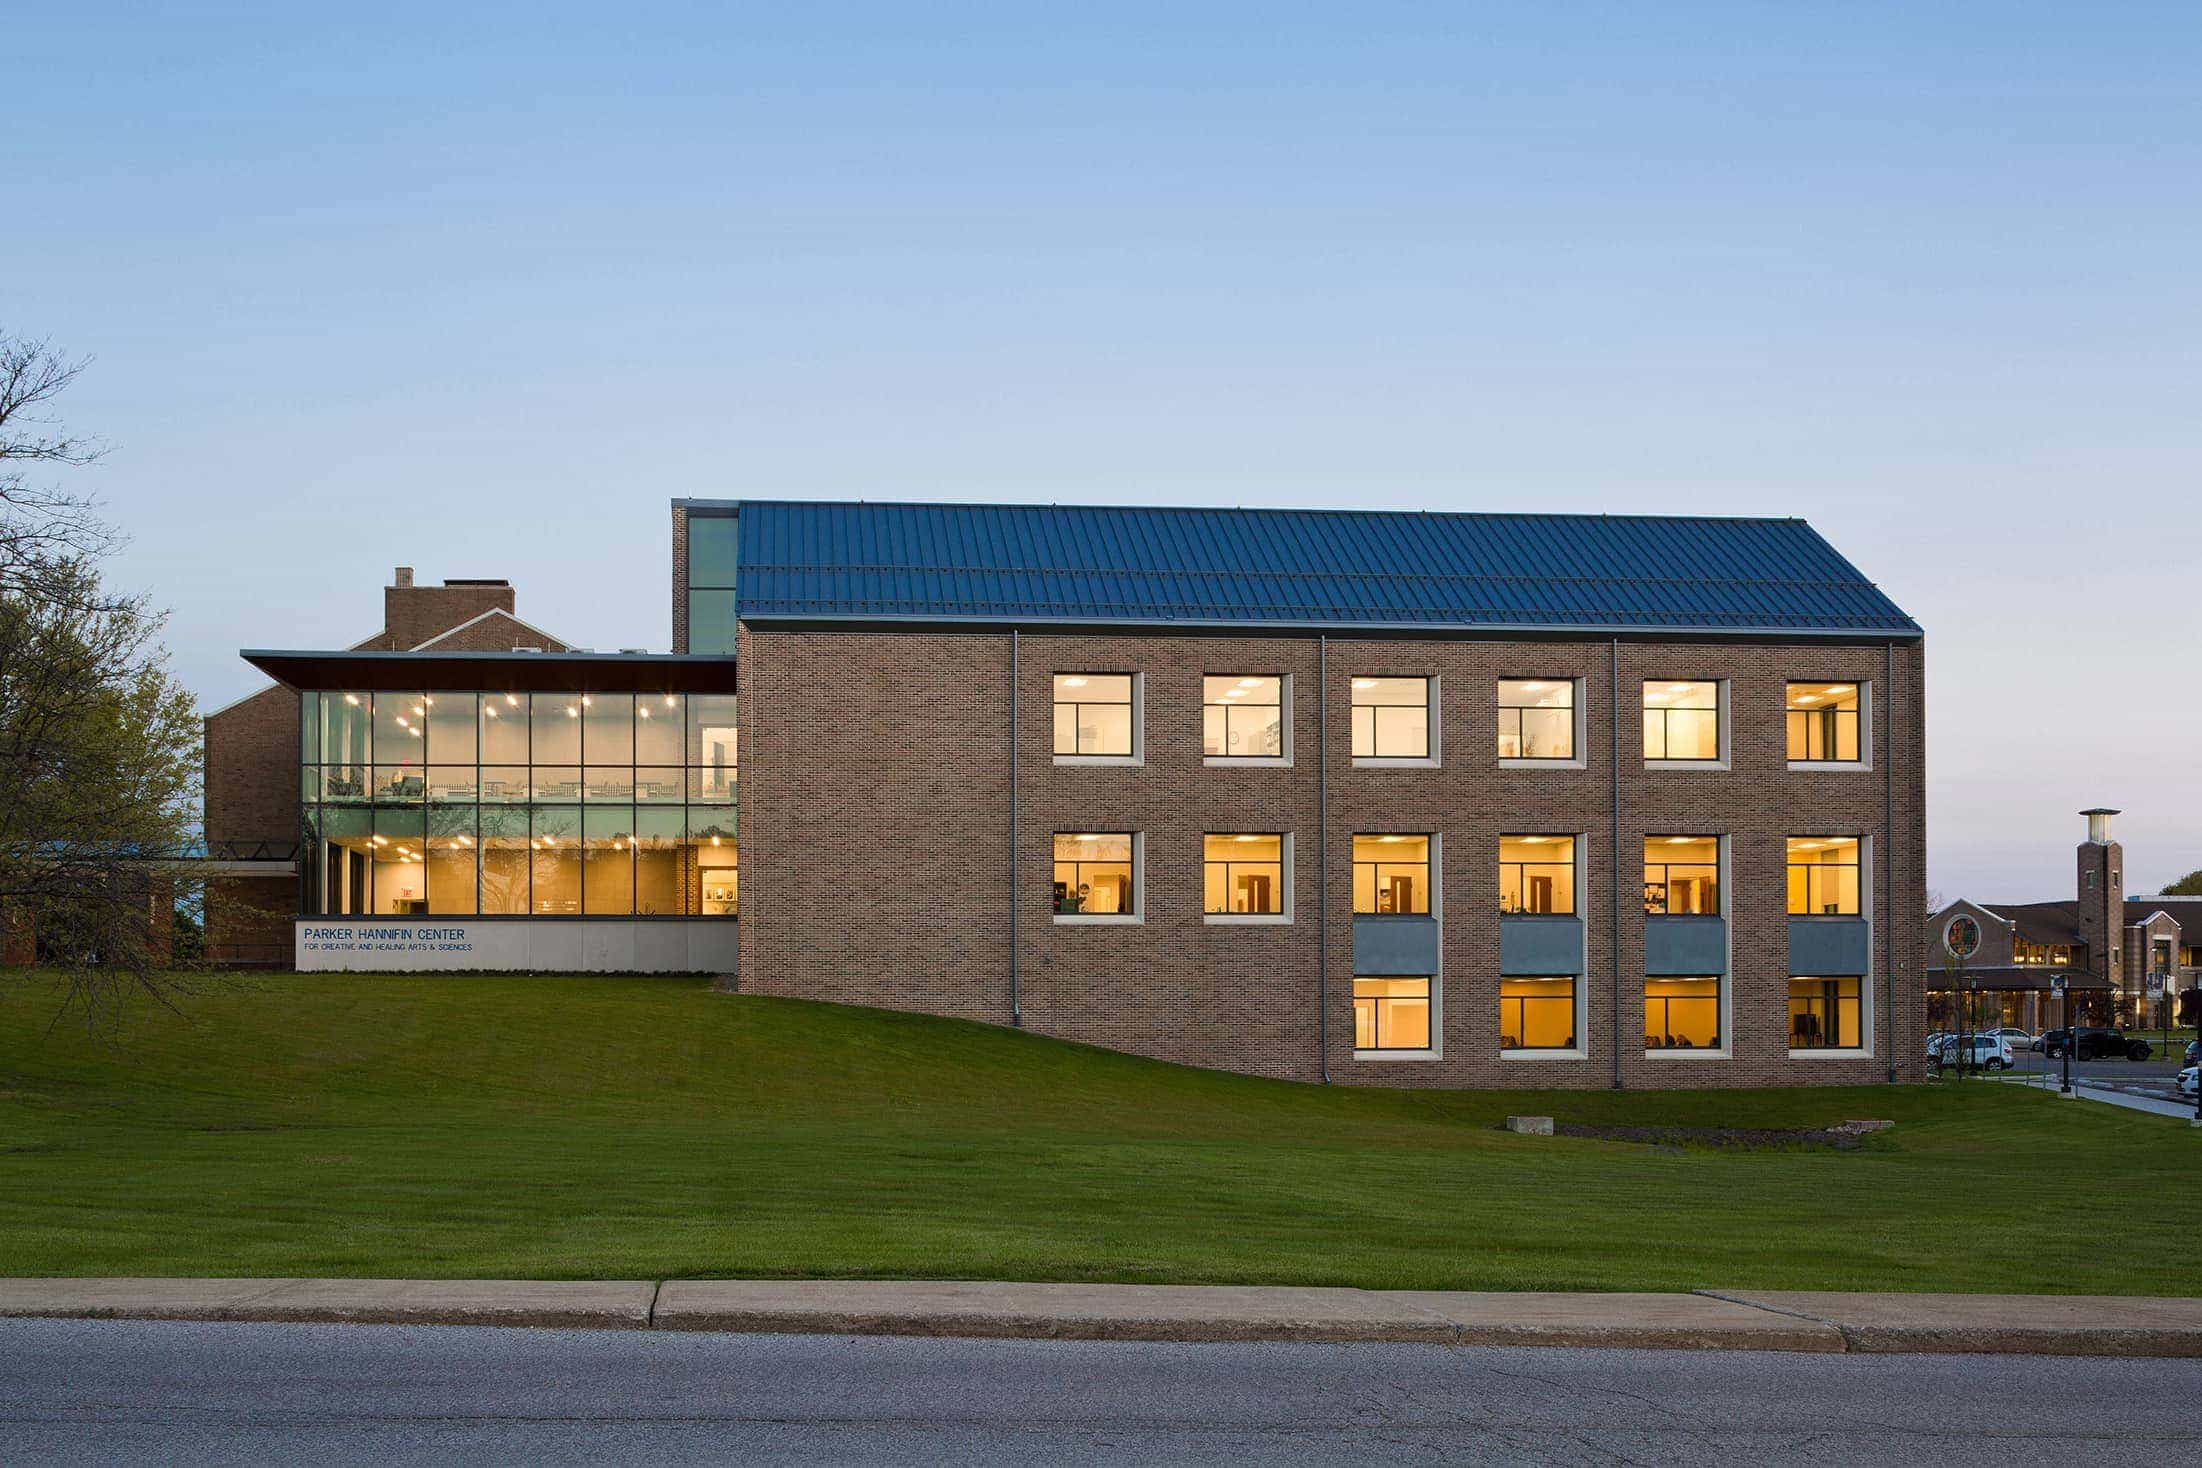 Ursuline College<br>Center for the Creative<br>and Healing Arts and Sciences